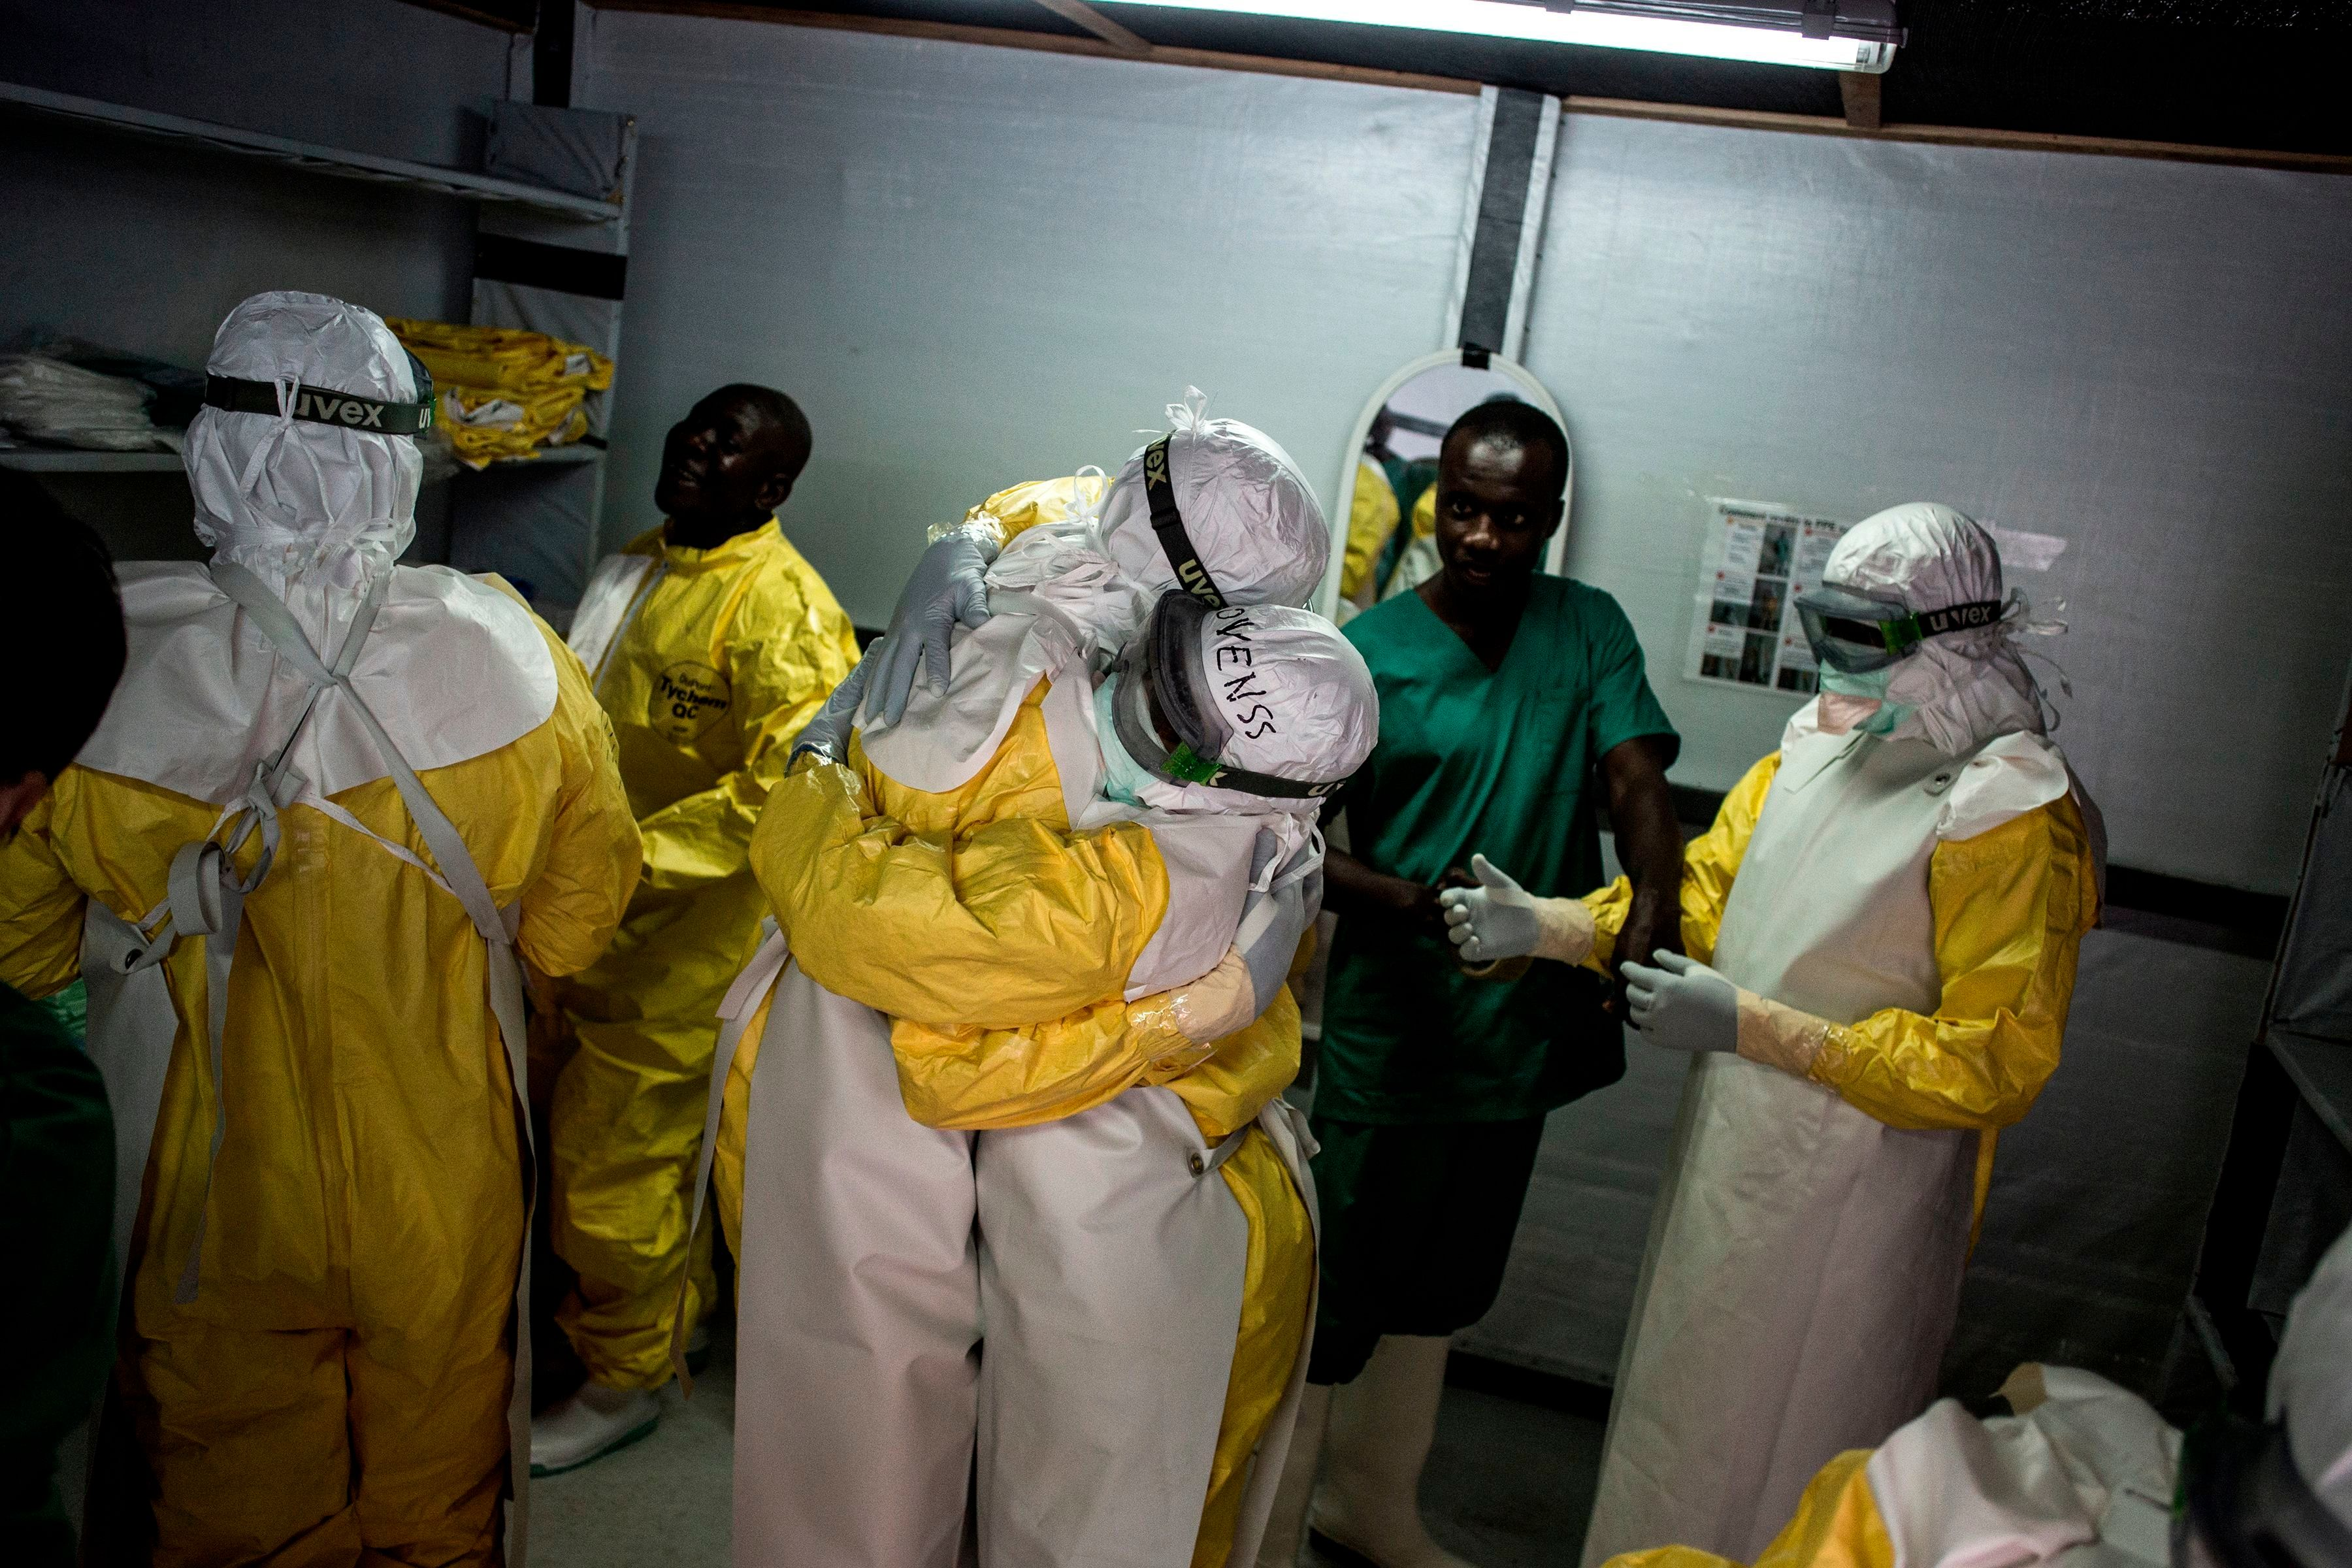 Health workers embrace whilst putting on their personal protective equipment (PPE) before heading into the red zone at a newly build MSF (Doctors Without Borders) supported ebola treatment centre (ETC) on November 7, 2018 in Bunia, Democratic Republic of the Congo. - The death toll from an Ebola outbreak in eastern Democratic Republic of Congo has risen to more than 200, the health ministry said on November 10, 2018. (Photo by John WESSELS / AFP)        (Photo credit should read JOHN WESSELS/AFP/Getty Images)